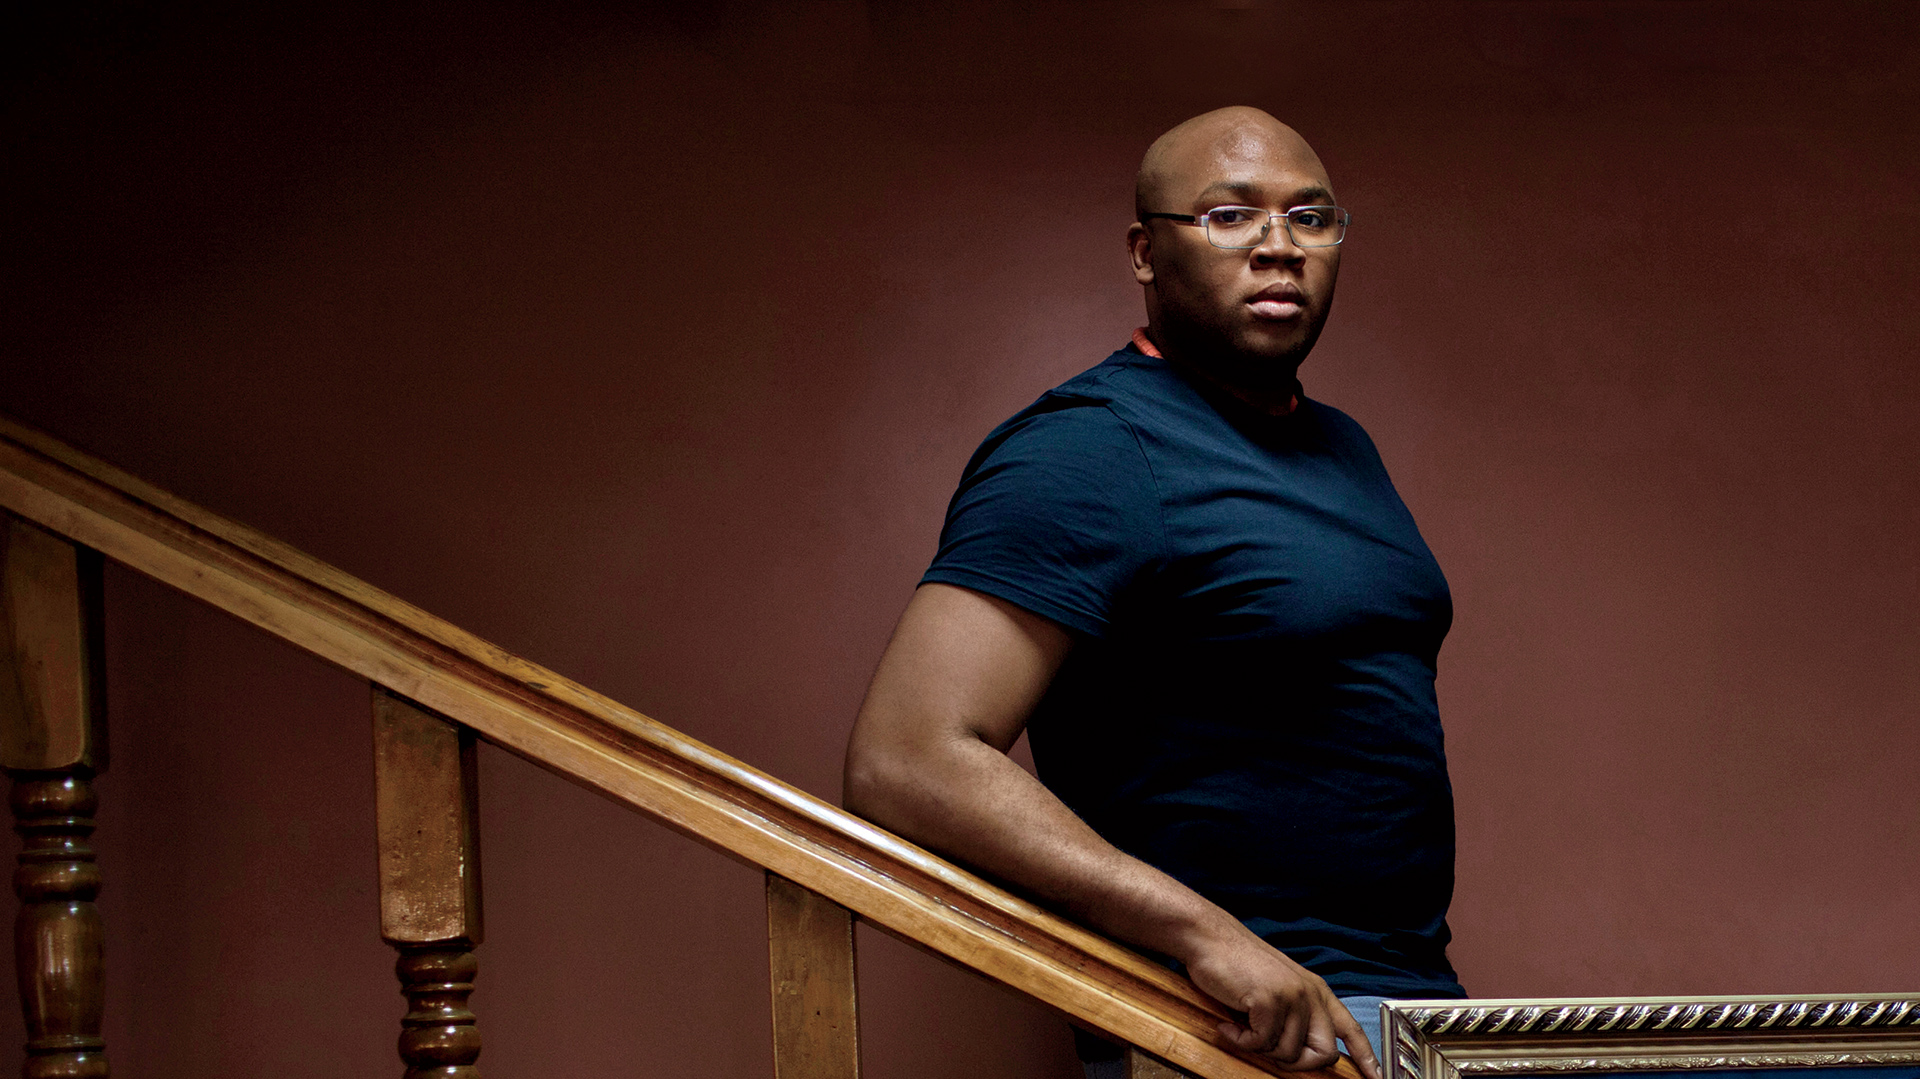 3006695-poster-p-1-u-irokos-jason-njoku-is-creating-the-next-netflix-in-nigeria